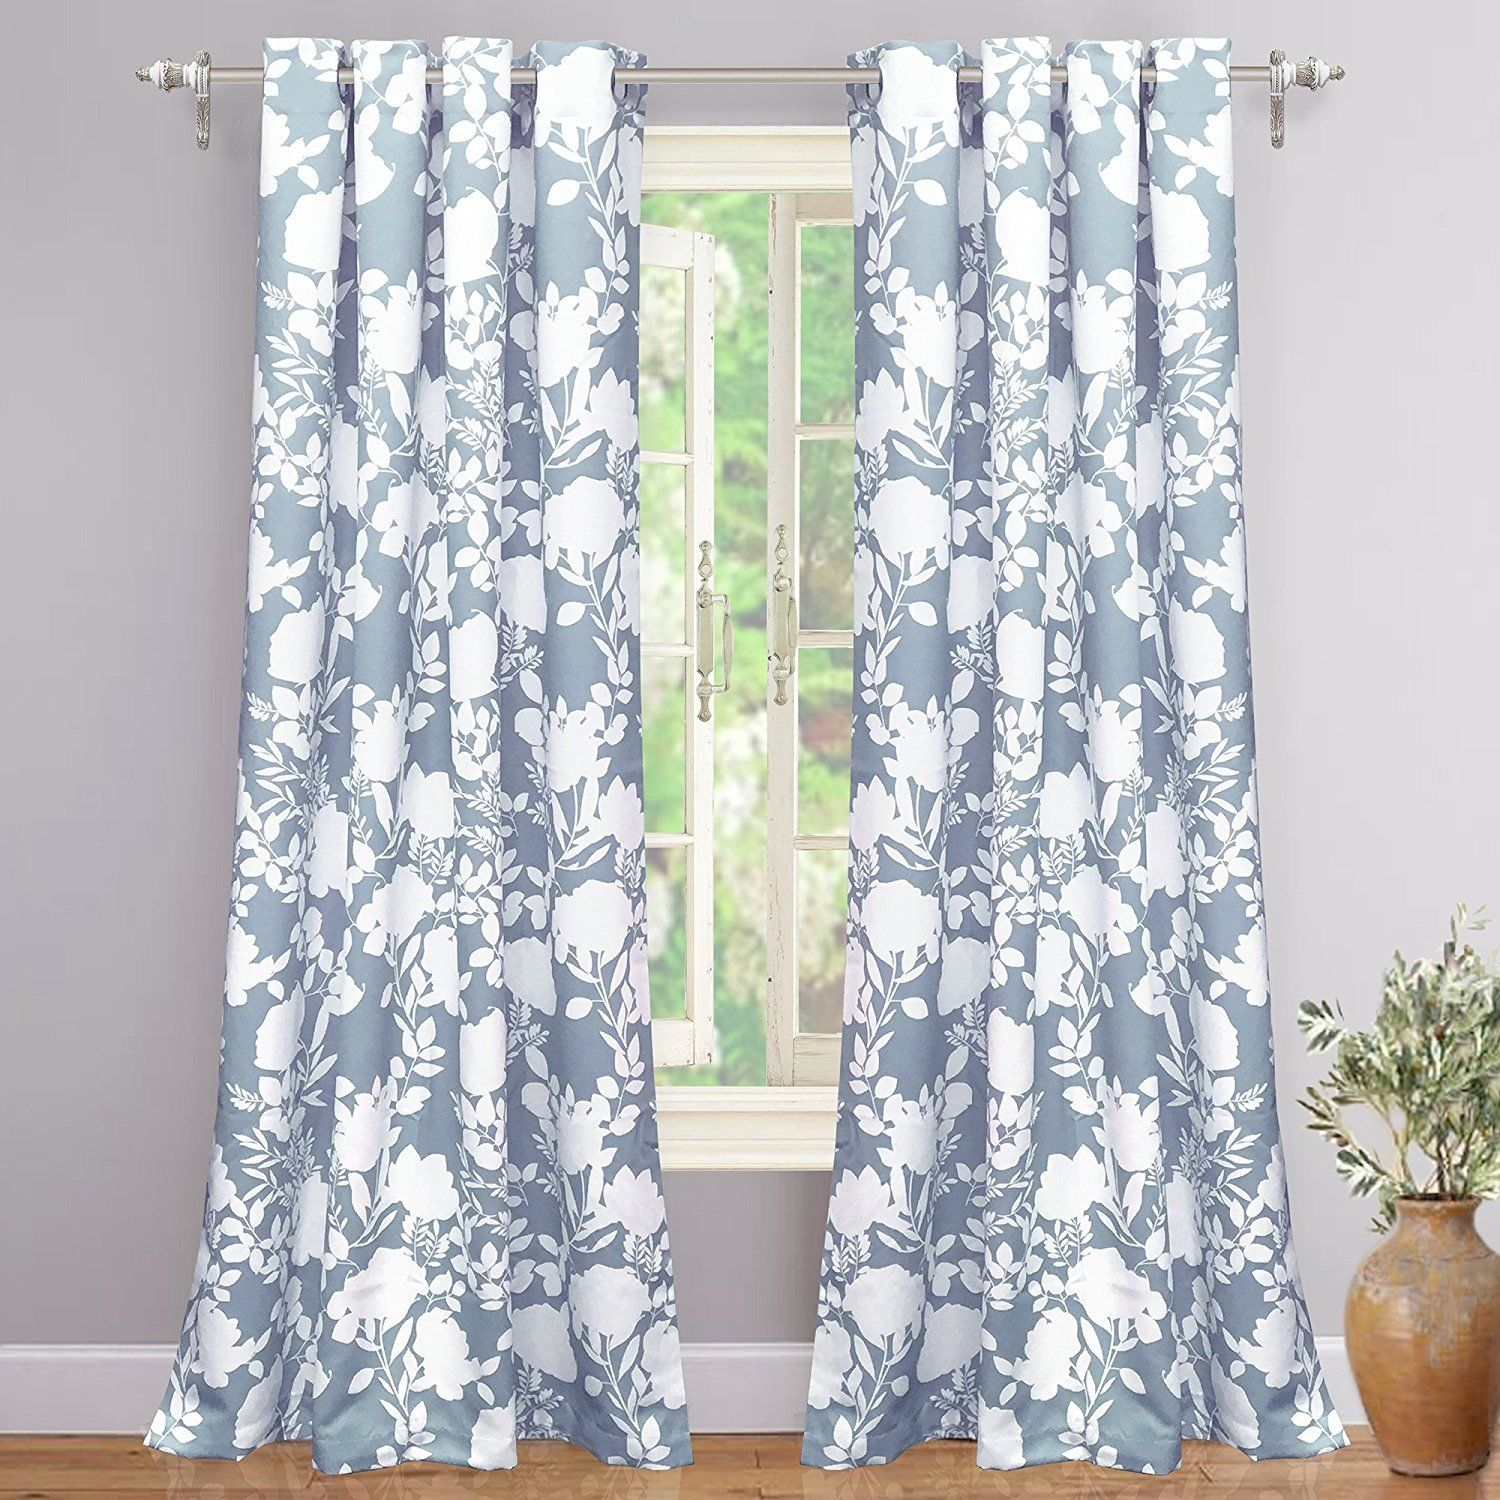 Set 2 Blue White Floral Vines Leaves Curtains Panels Drapes 84 Inch L Darkening The Clearance Castle Llc